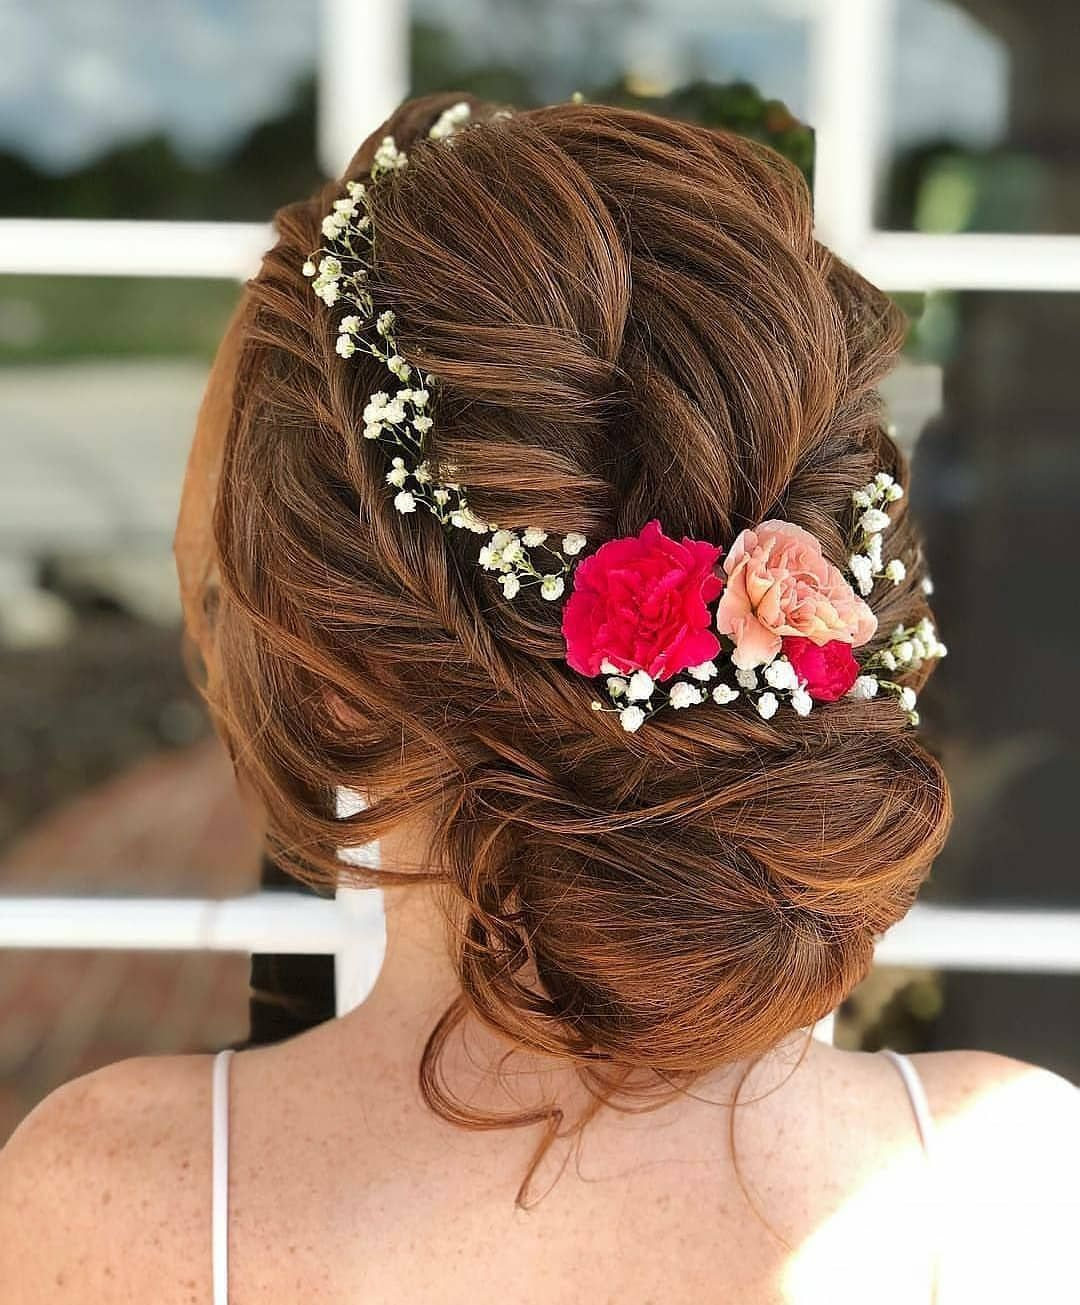 20 Wedding Hairstyles Within Flowers For Bride Ibaz In 2020 Hair Styles Indian Wedding Hairstyles Bridal Hair Inspiration